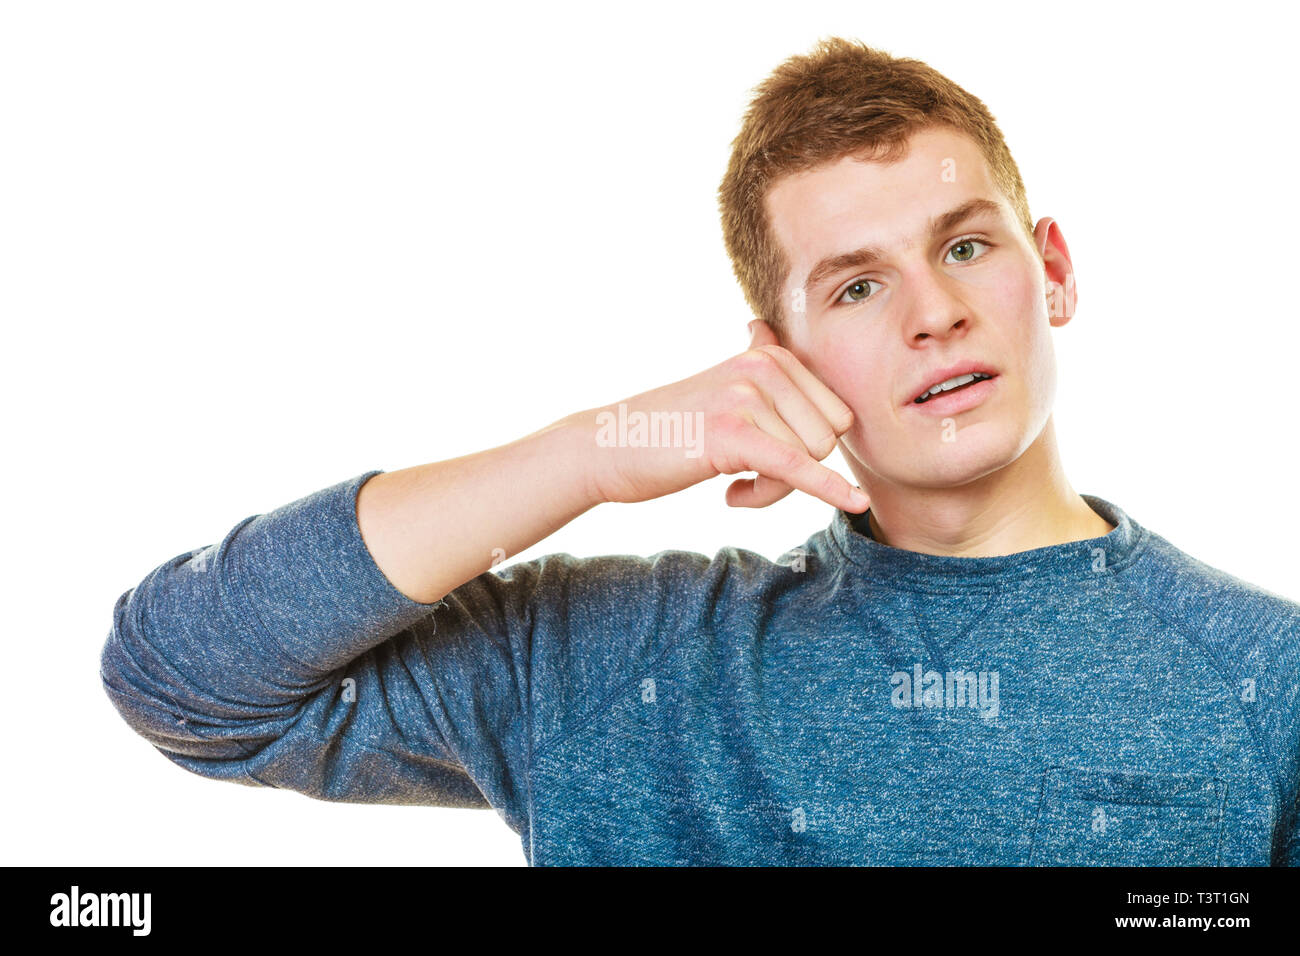 Communication concept. Young man making call me gesture. Blonde teen boy with phone hand sign isolated on white - Stock Image